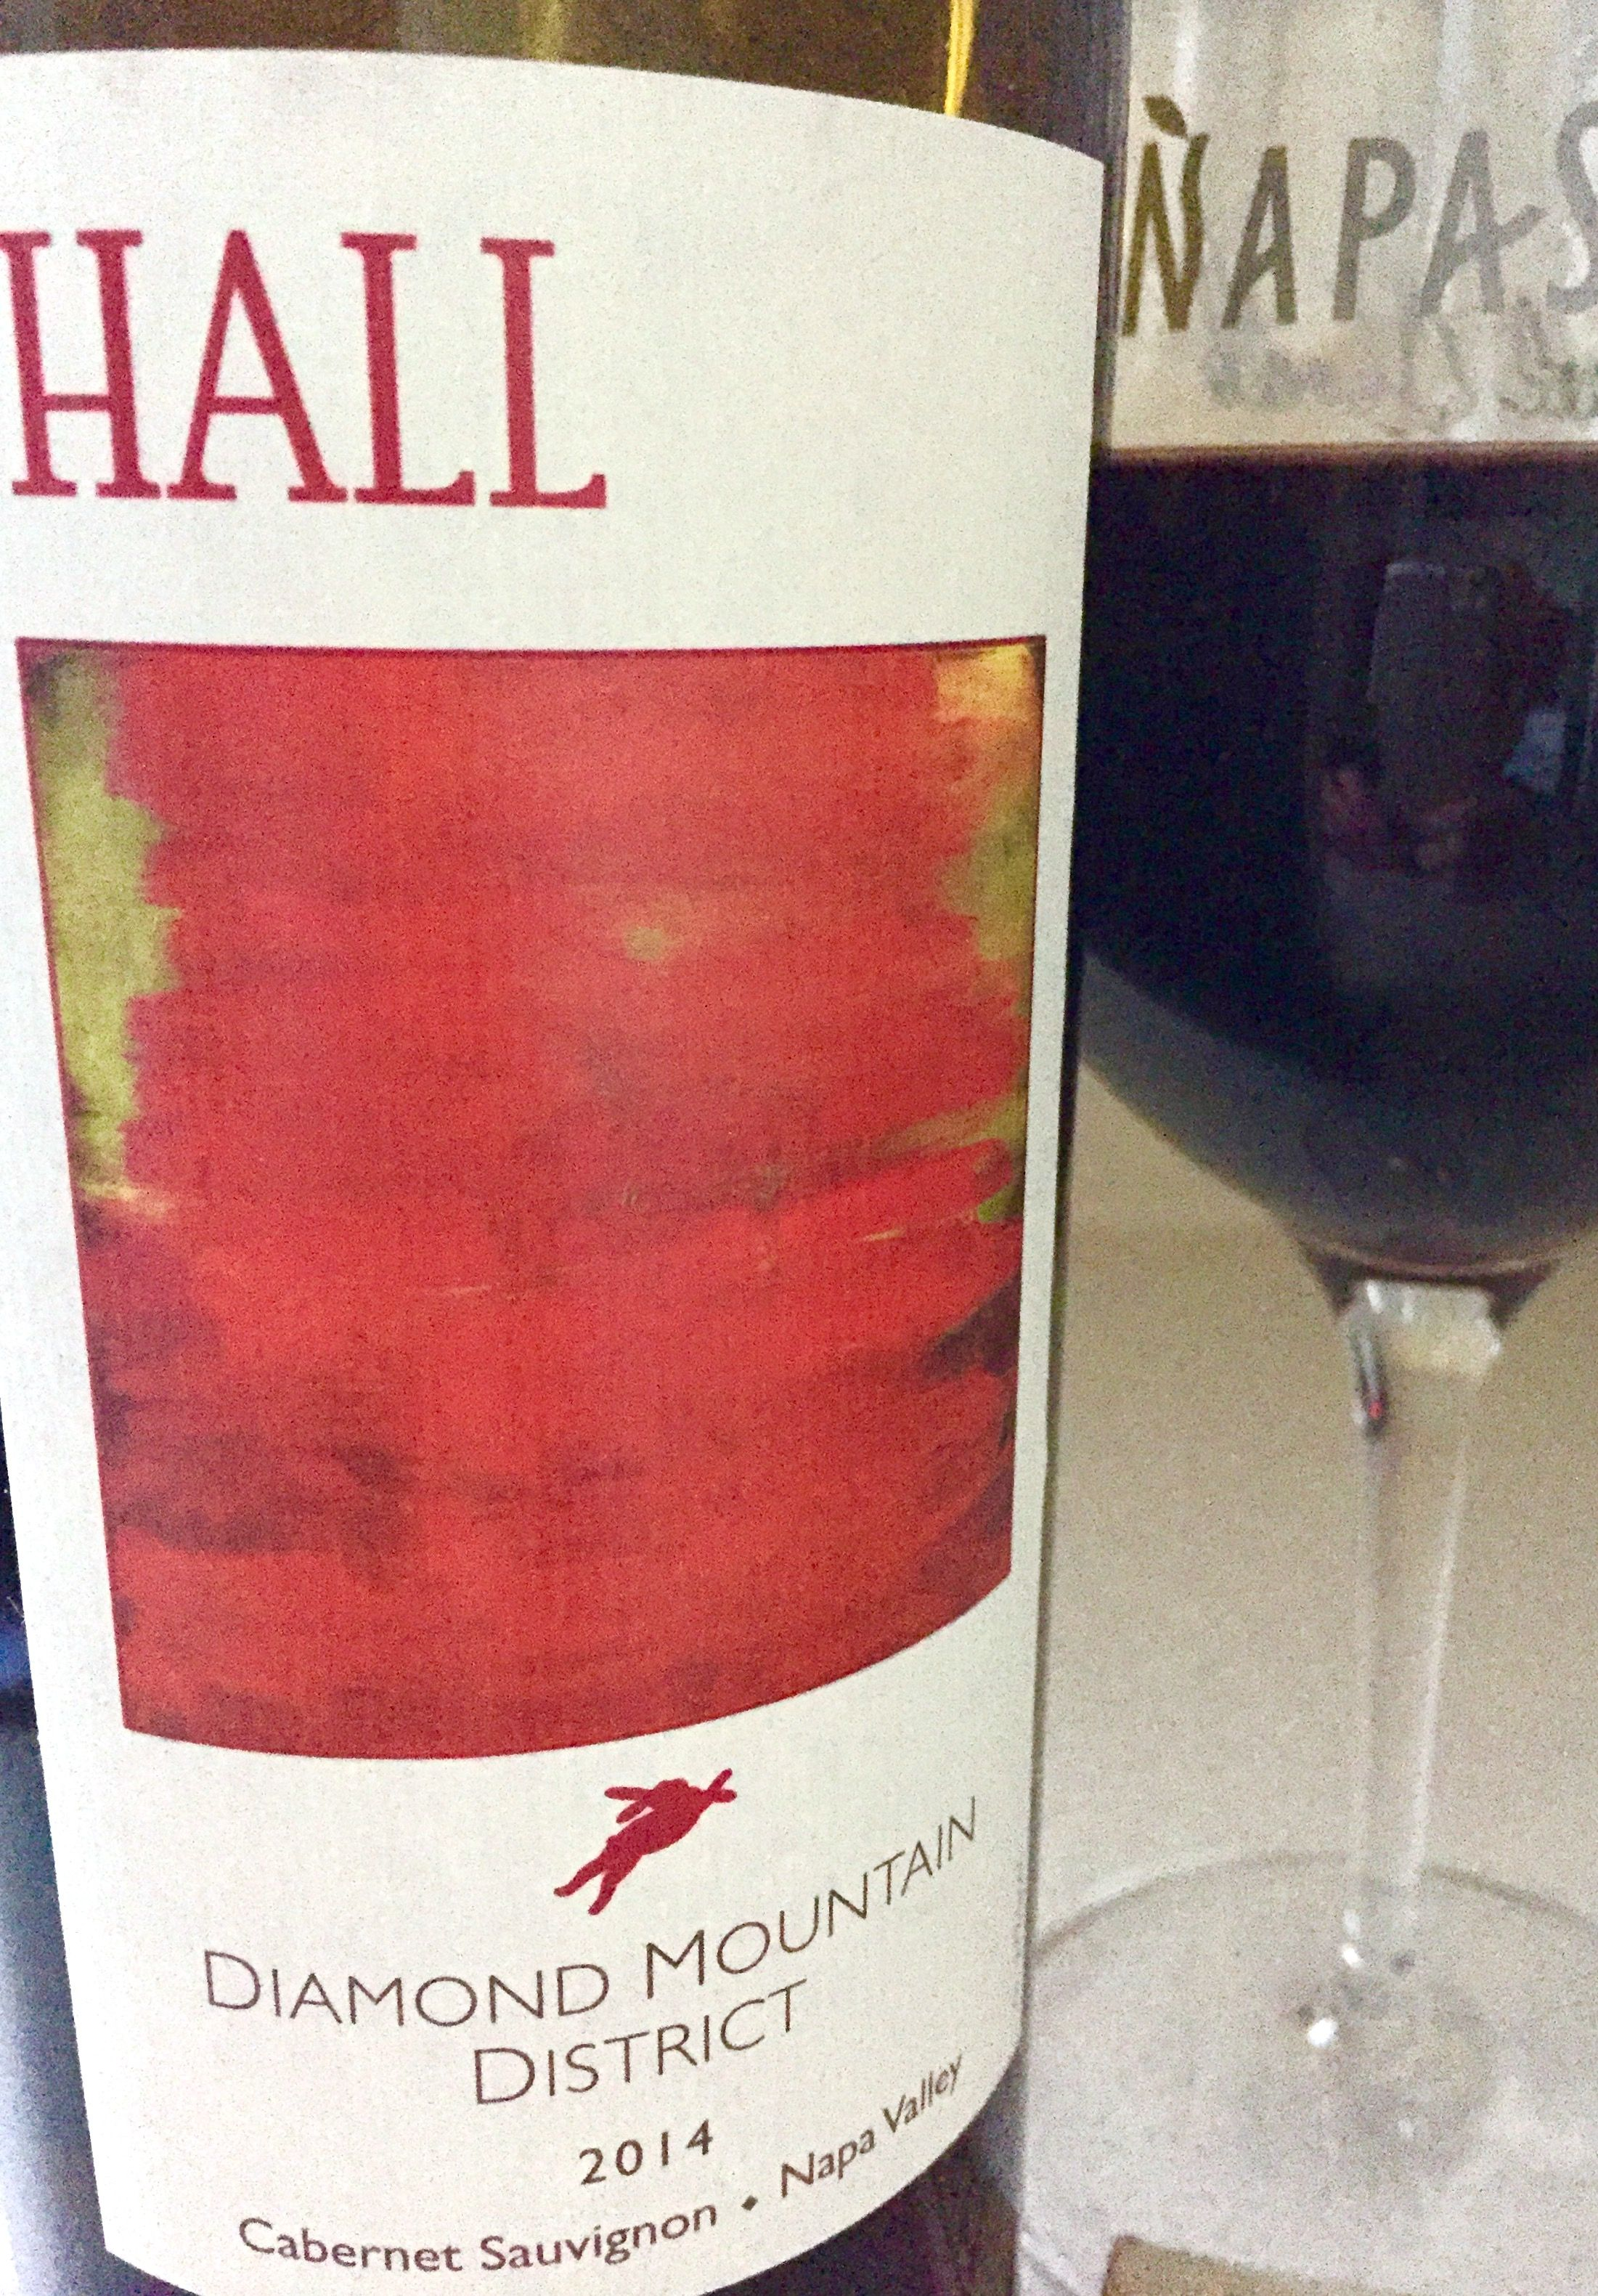 Hall Diamond Mountain District 2014 Cabernet Sauvignon Napa Valley Rose Wine Bottle Cabernet Sauvignon Sauvignon